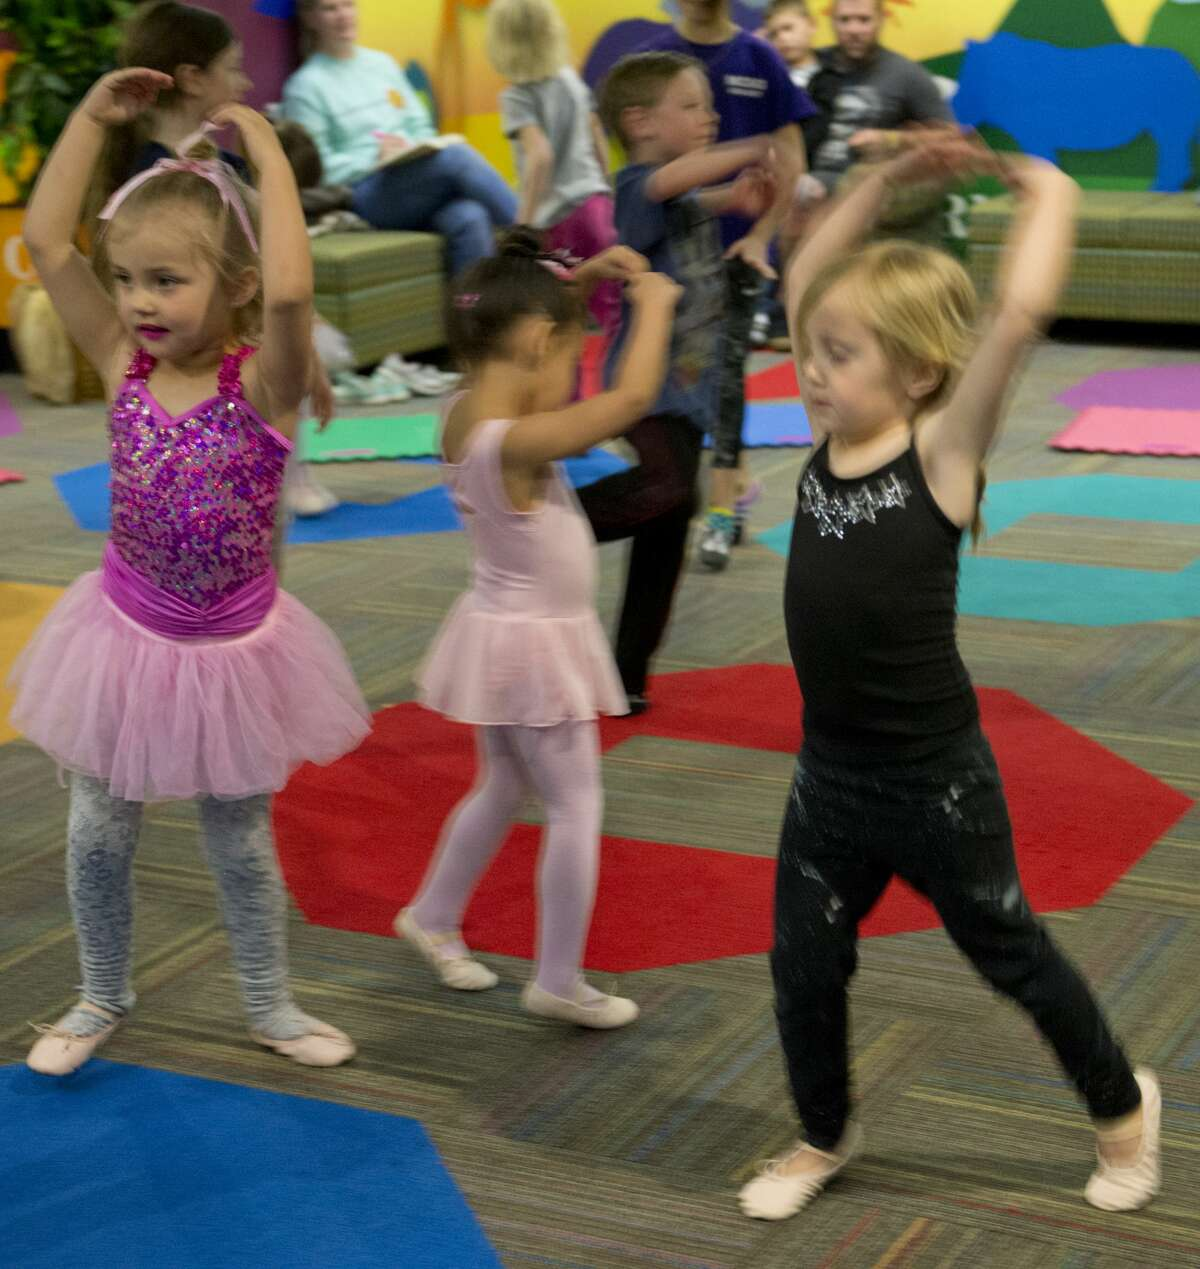 Prince and princesses practice their ballet moves during free dance time 03/12/18 at the Centennial Branch Library, for Princess Ballet Camp during Spring Break week. Tim Fischer/Reporter-Telegram